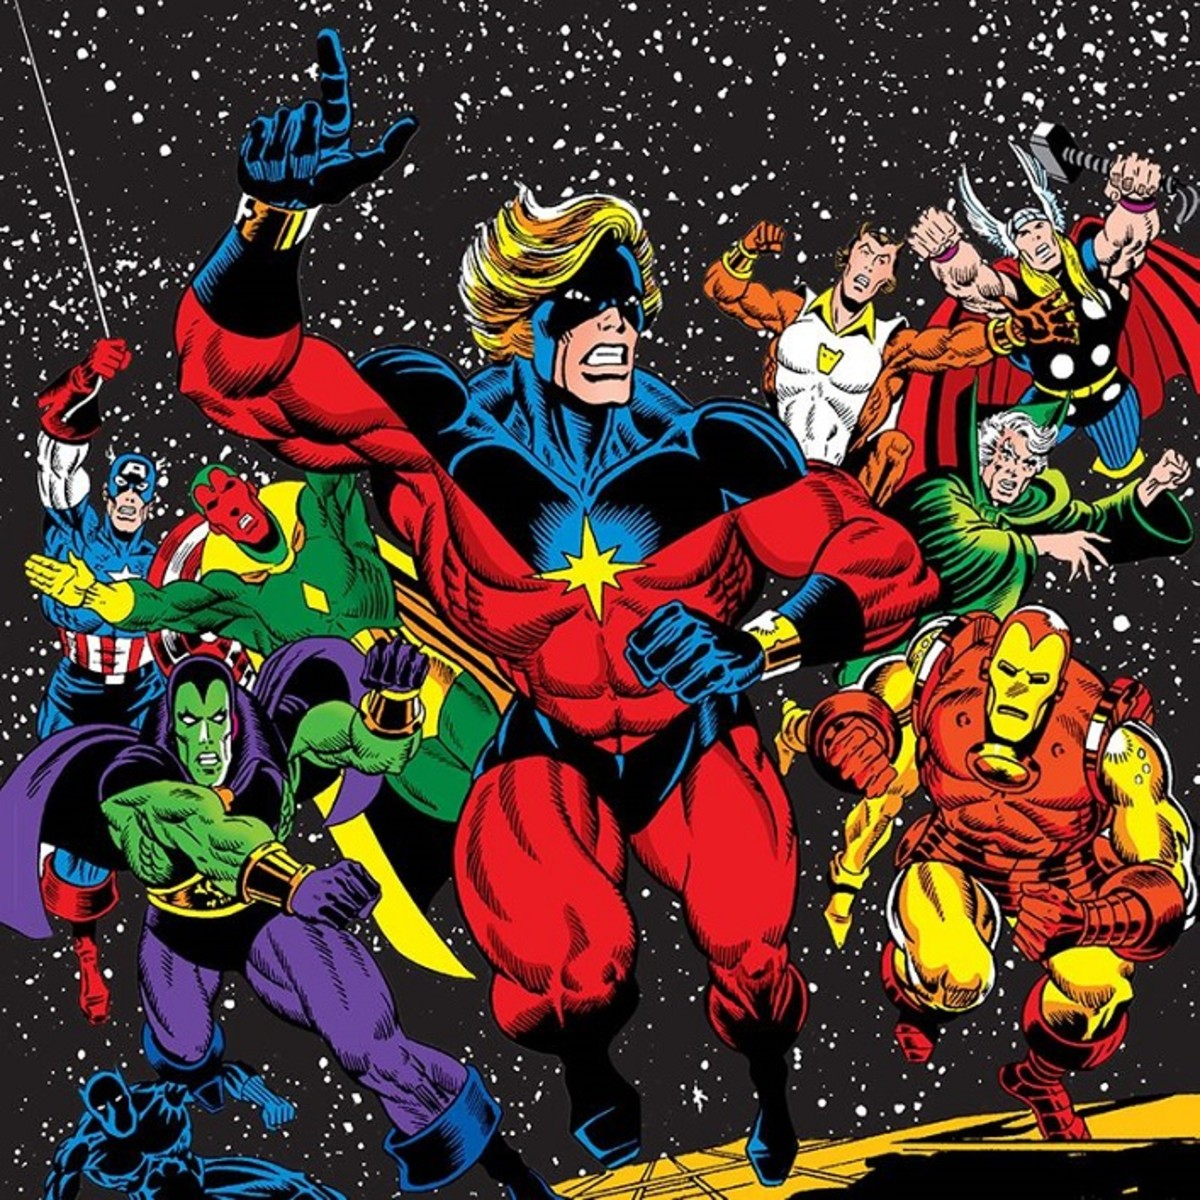 Mar-Vell rallying the Avengers against Thanos